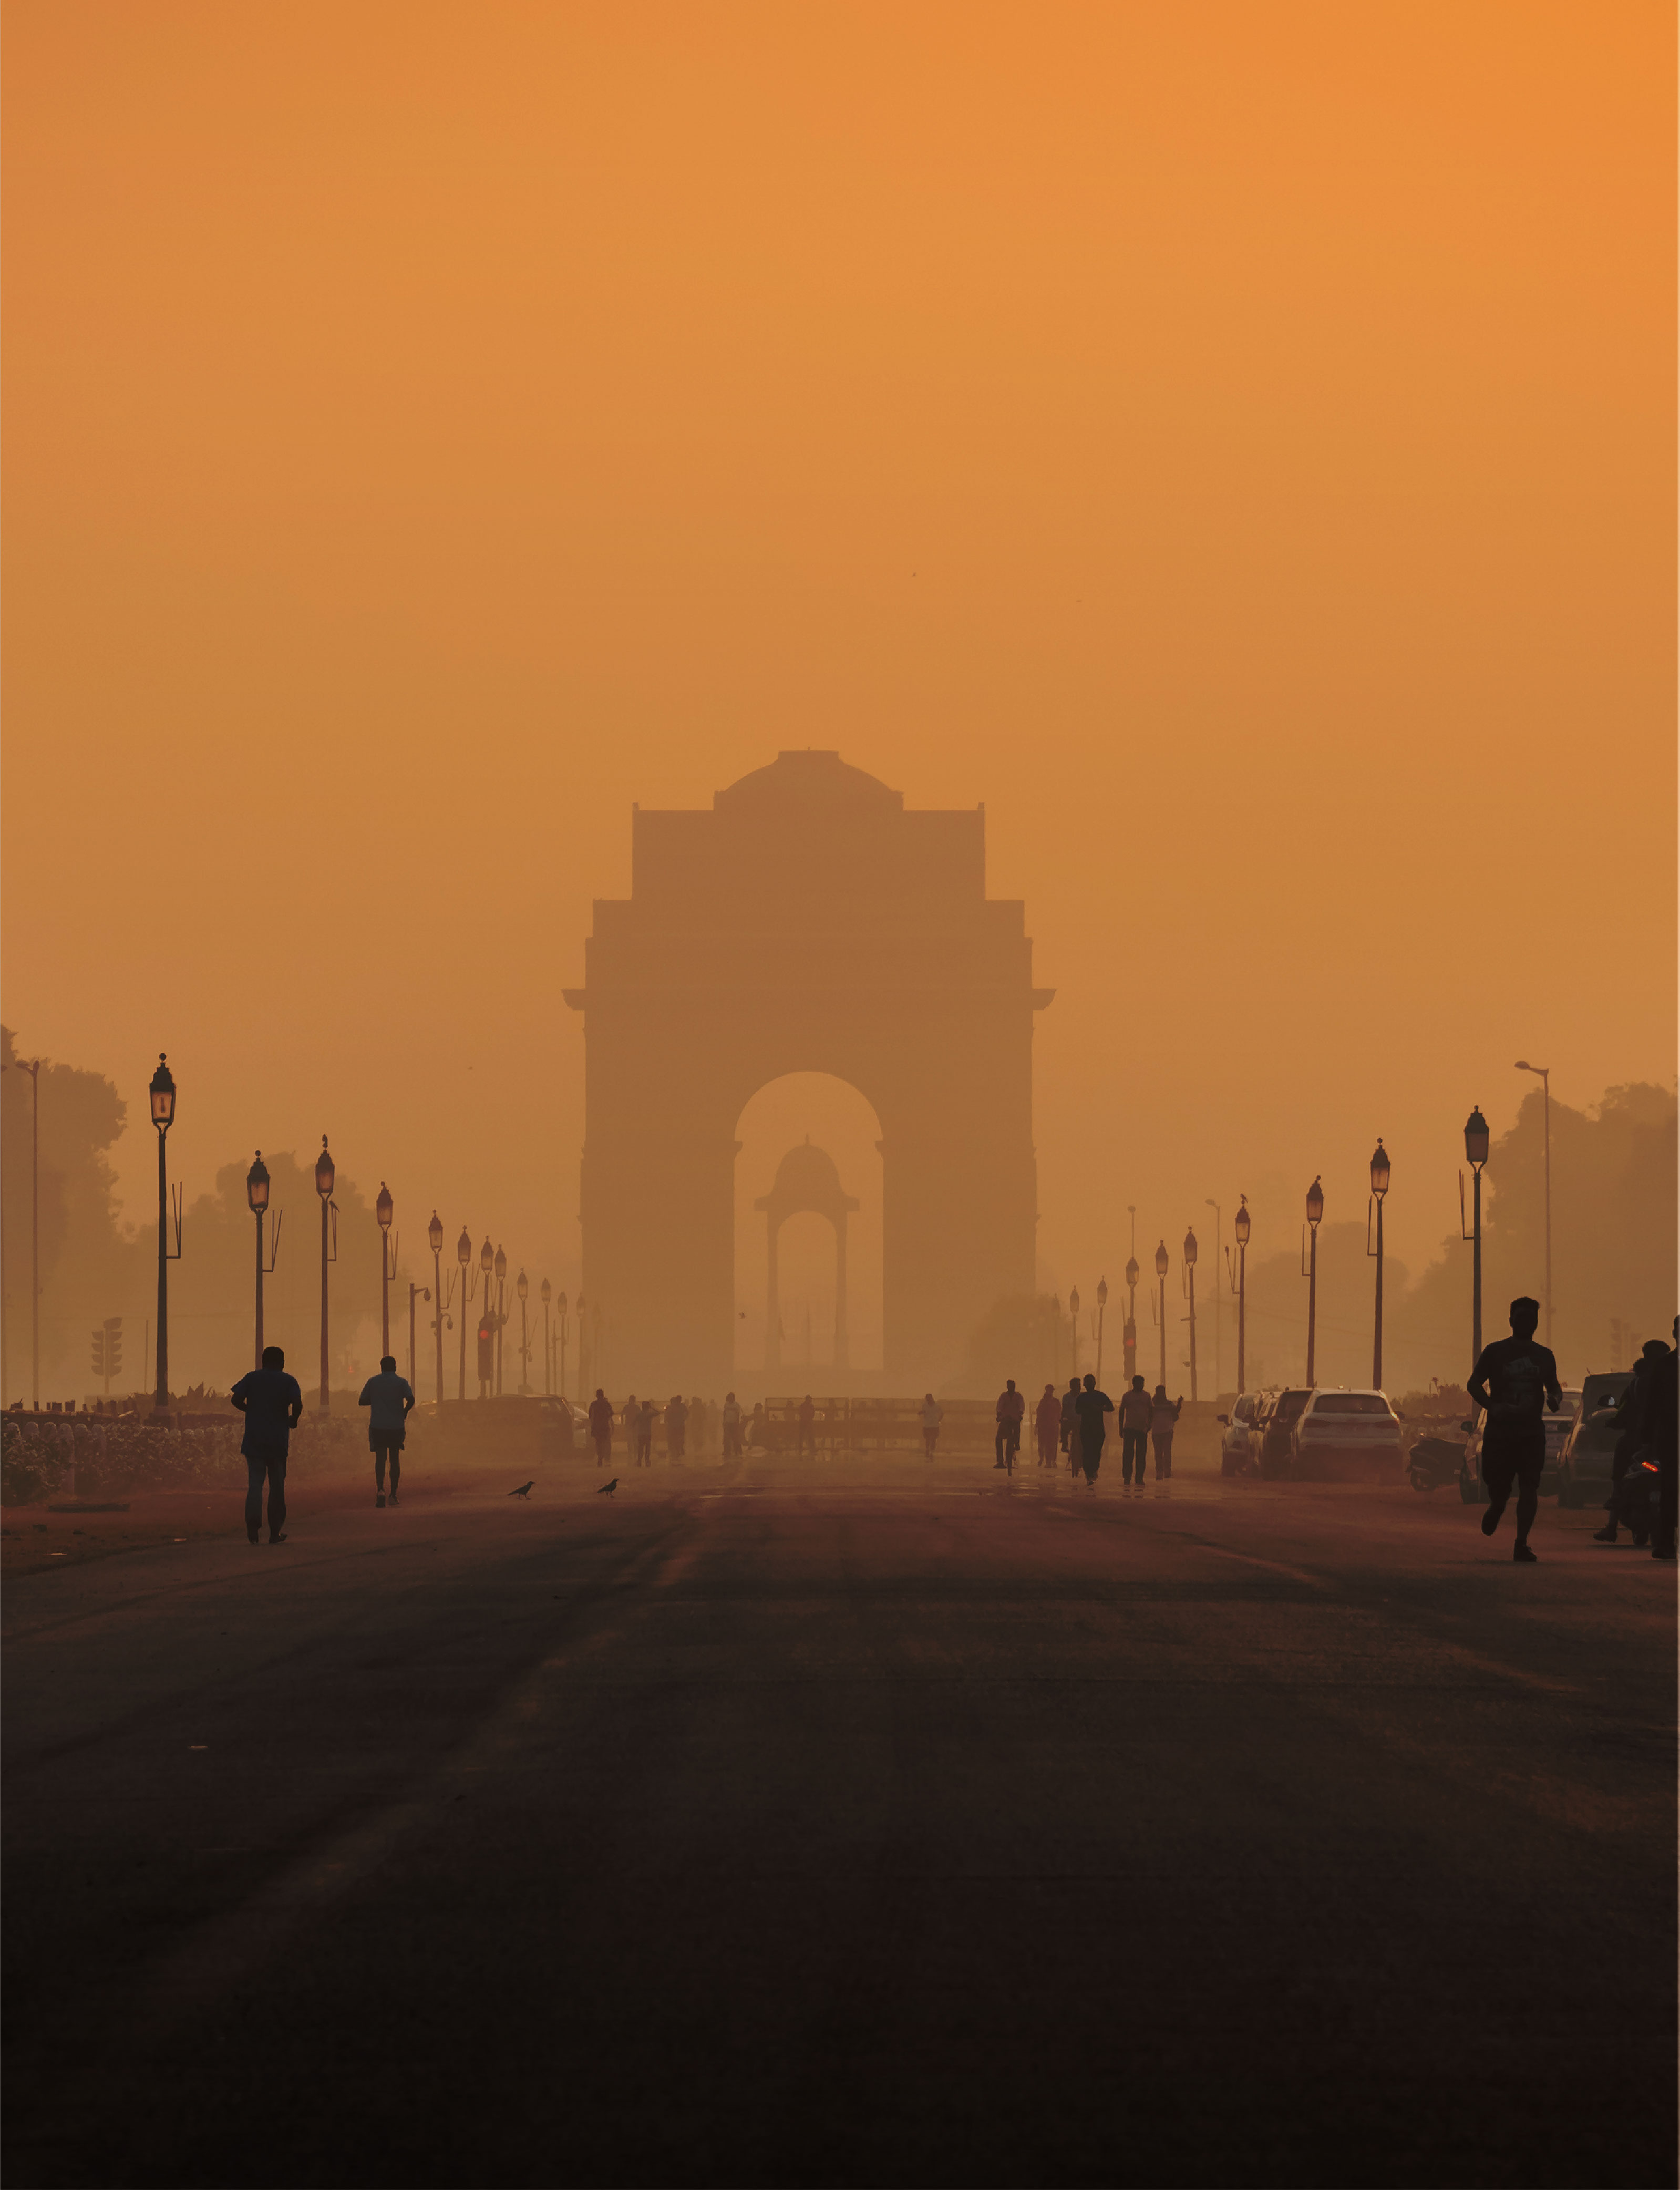 Analyzing pollution levels in Delhi NCR during the COVID-19 lockdown